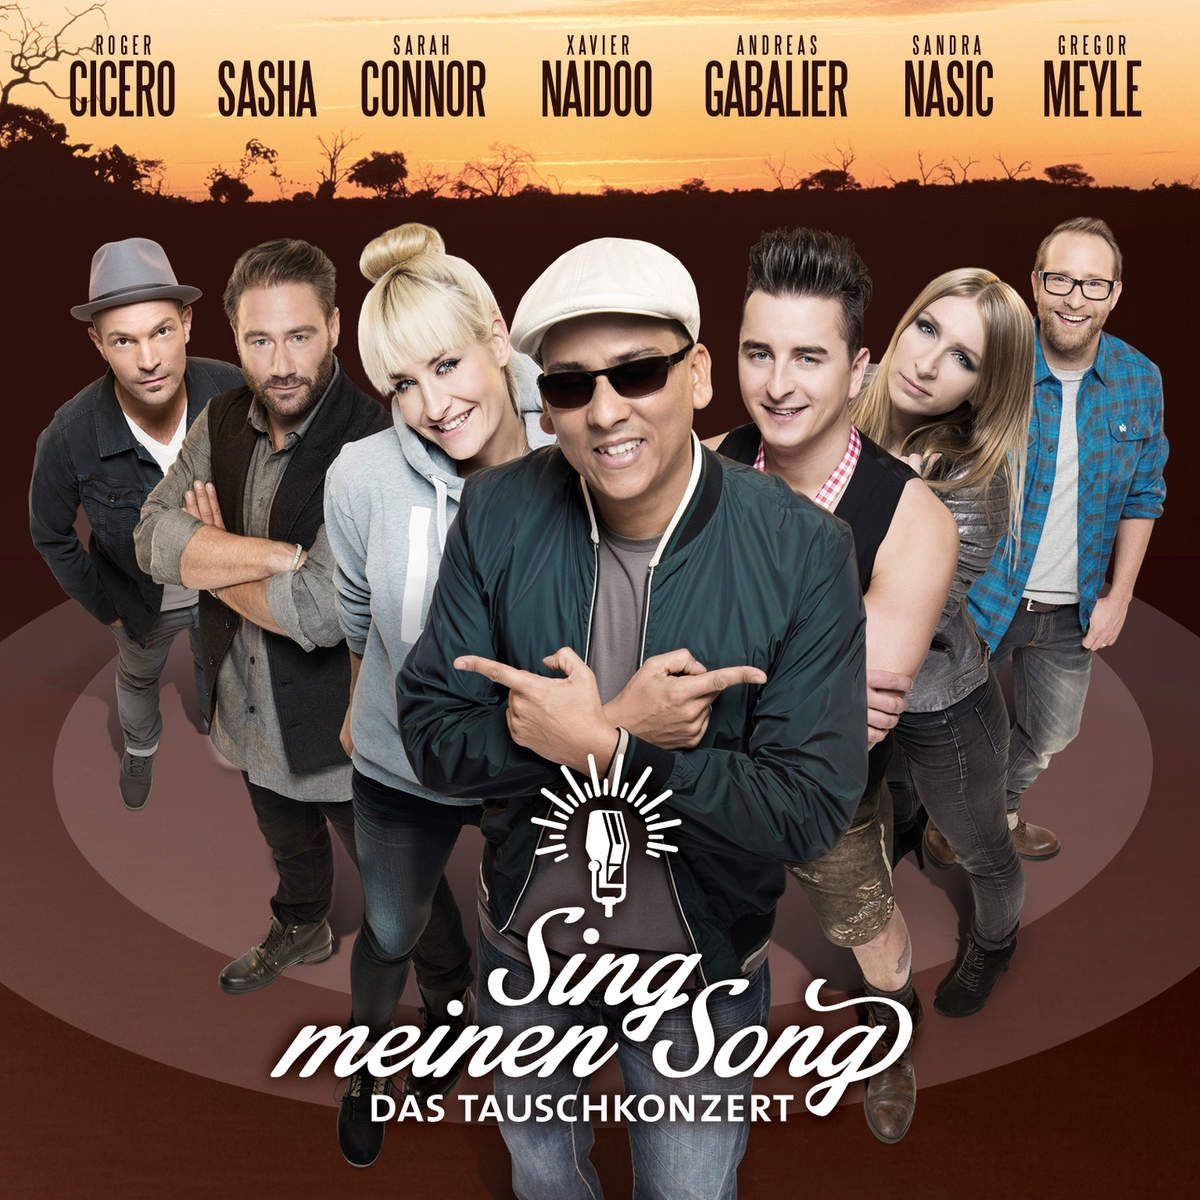 Various Artists - Sing Meinen Song - Das Tauschkonzert album cover